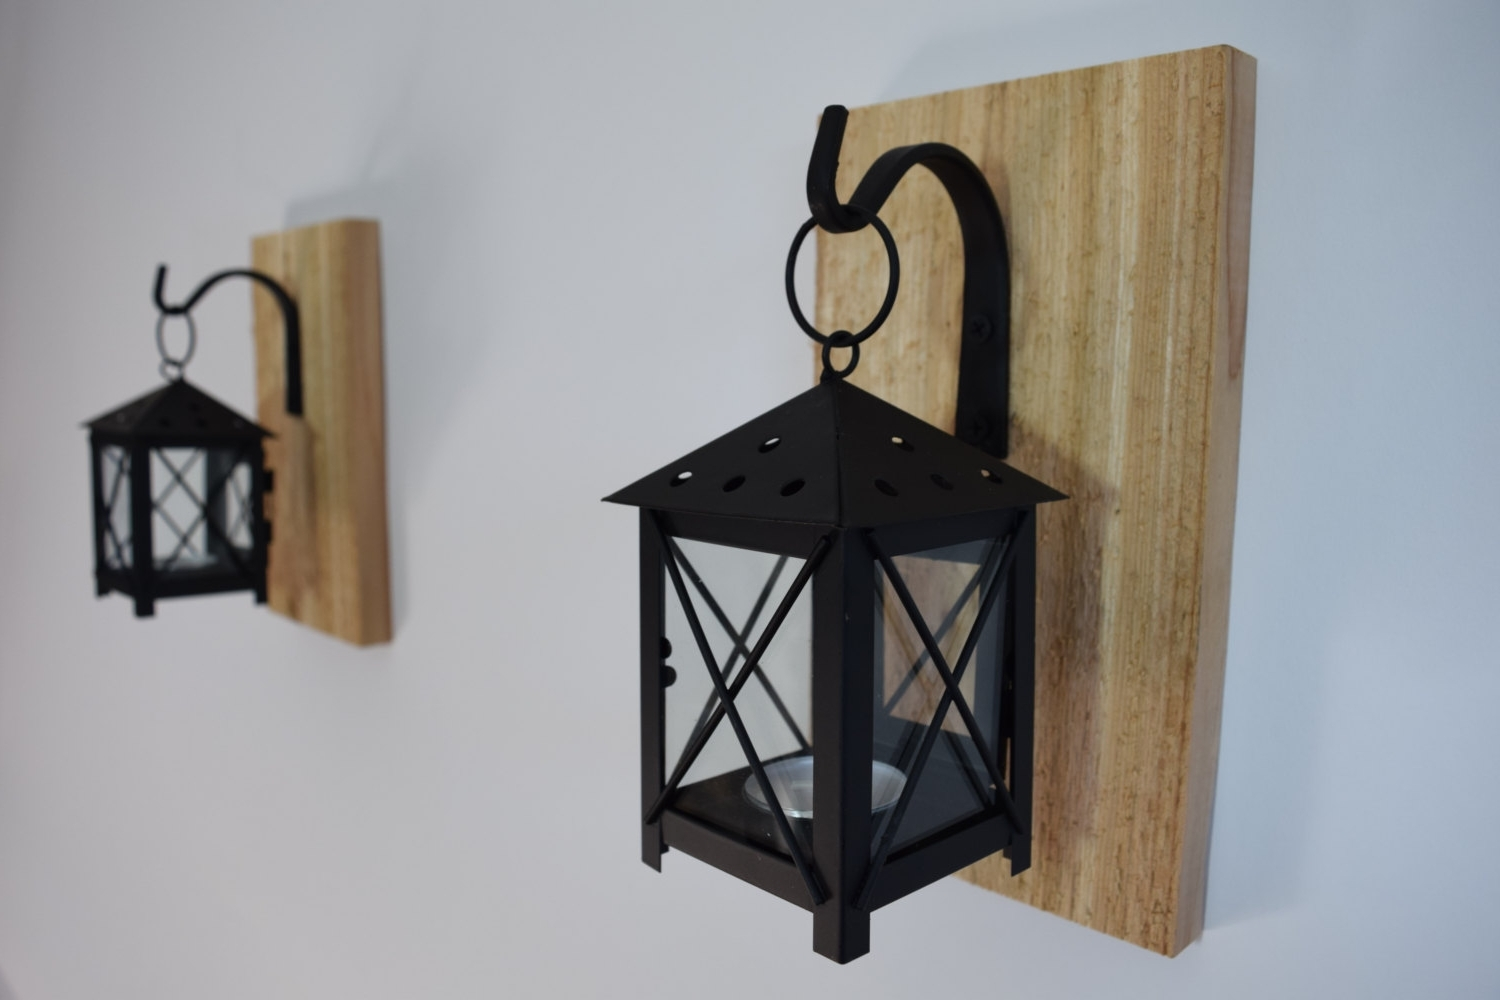 Etsy Outdoor Lanterns Within 2019 17 Rustic Lantern Wall Sconce, Lantern Sconces Outdoor Wall Sconce (View 7 of 20)